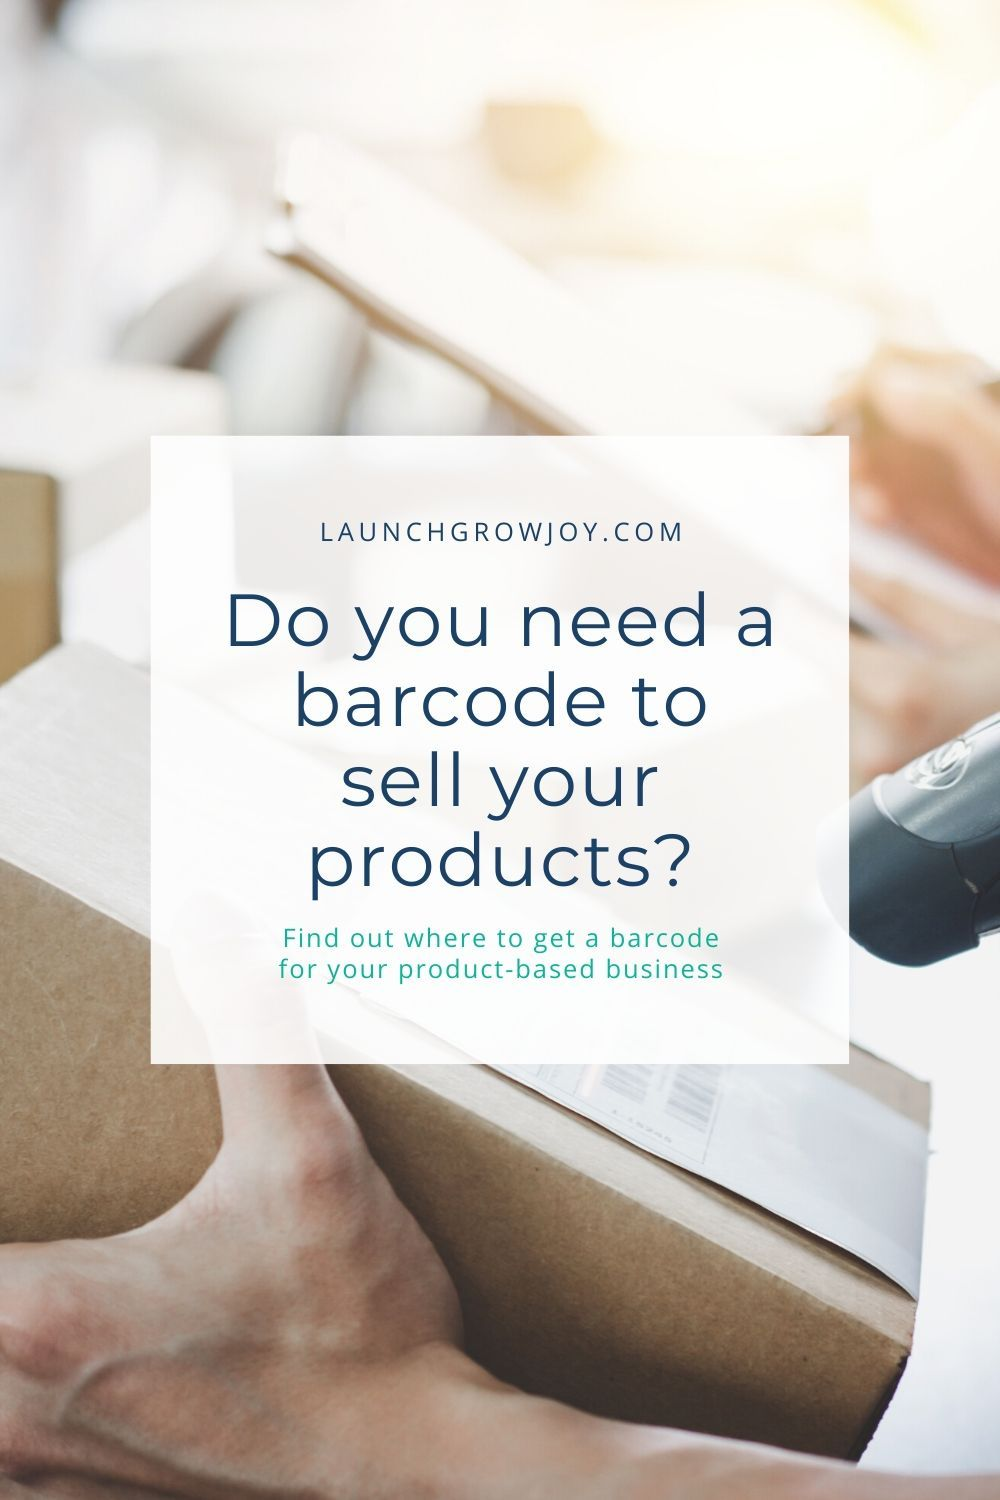 How To Get A Barcode For Your Products Launch Grow Joy Ecommerce Marketing Marketing Essentials Product Based Business